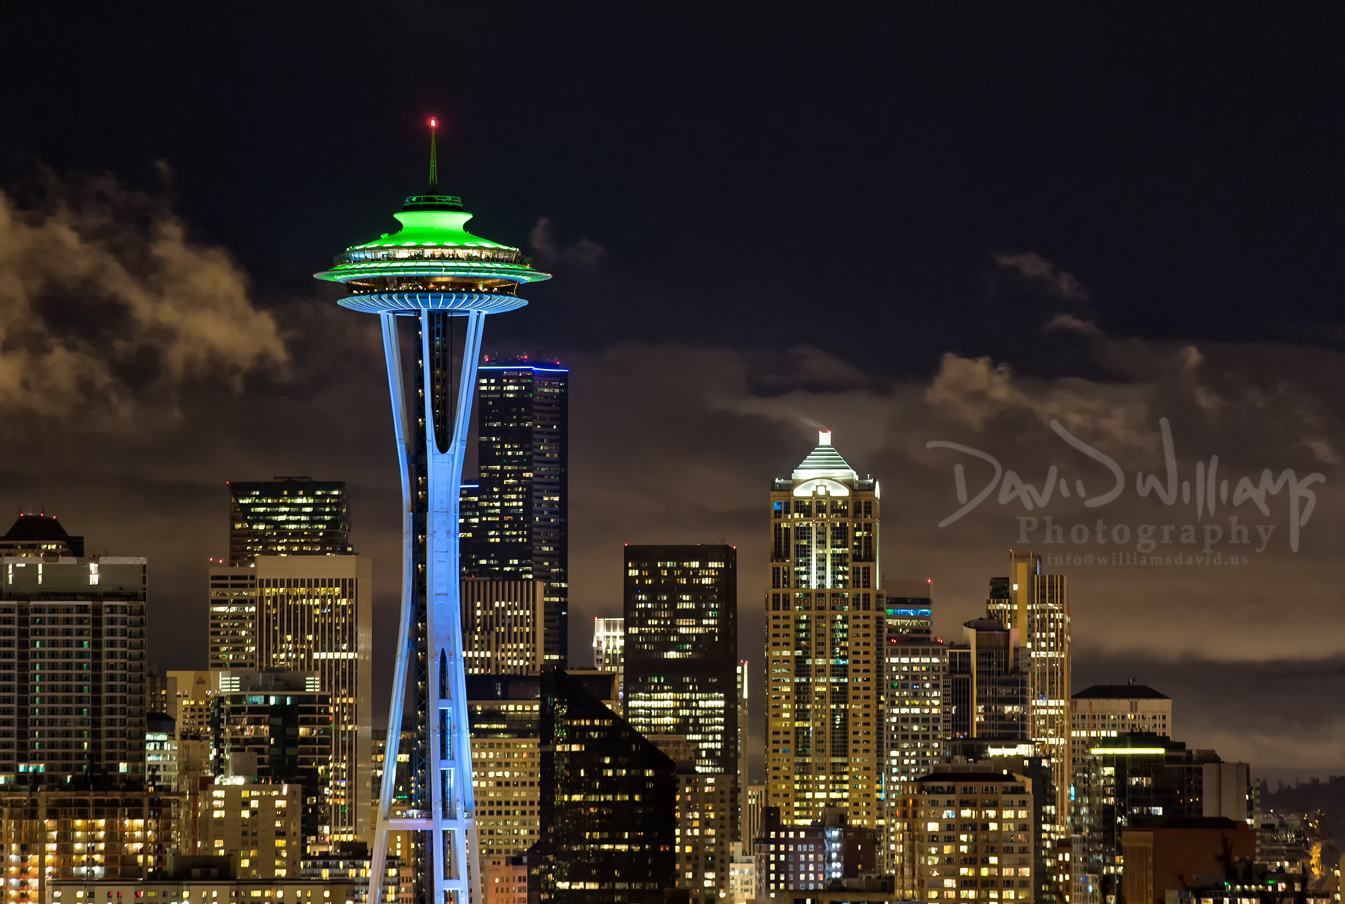 The Seattle Space Needle David Williams Photography